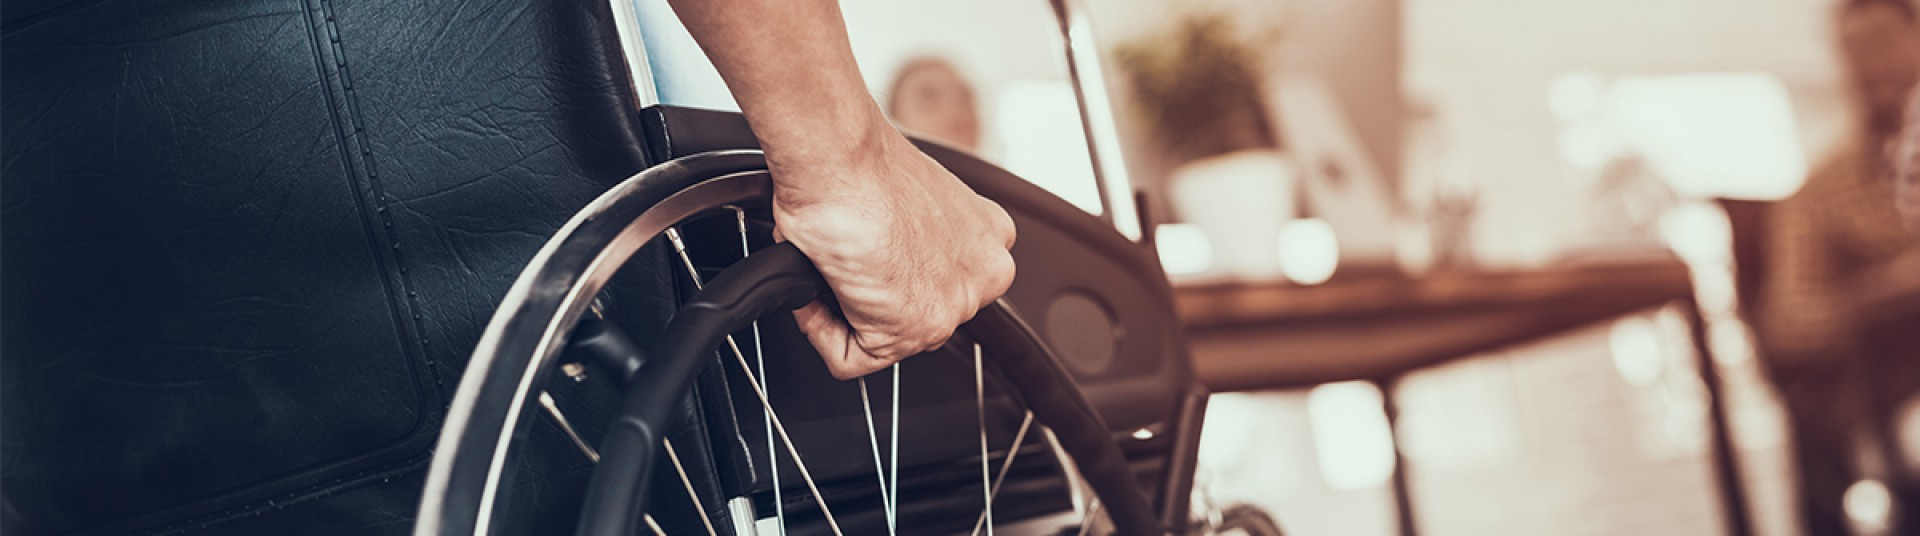 Wheelchair Van Financing & Rebates (1)